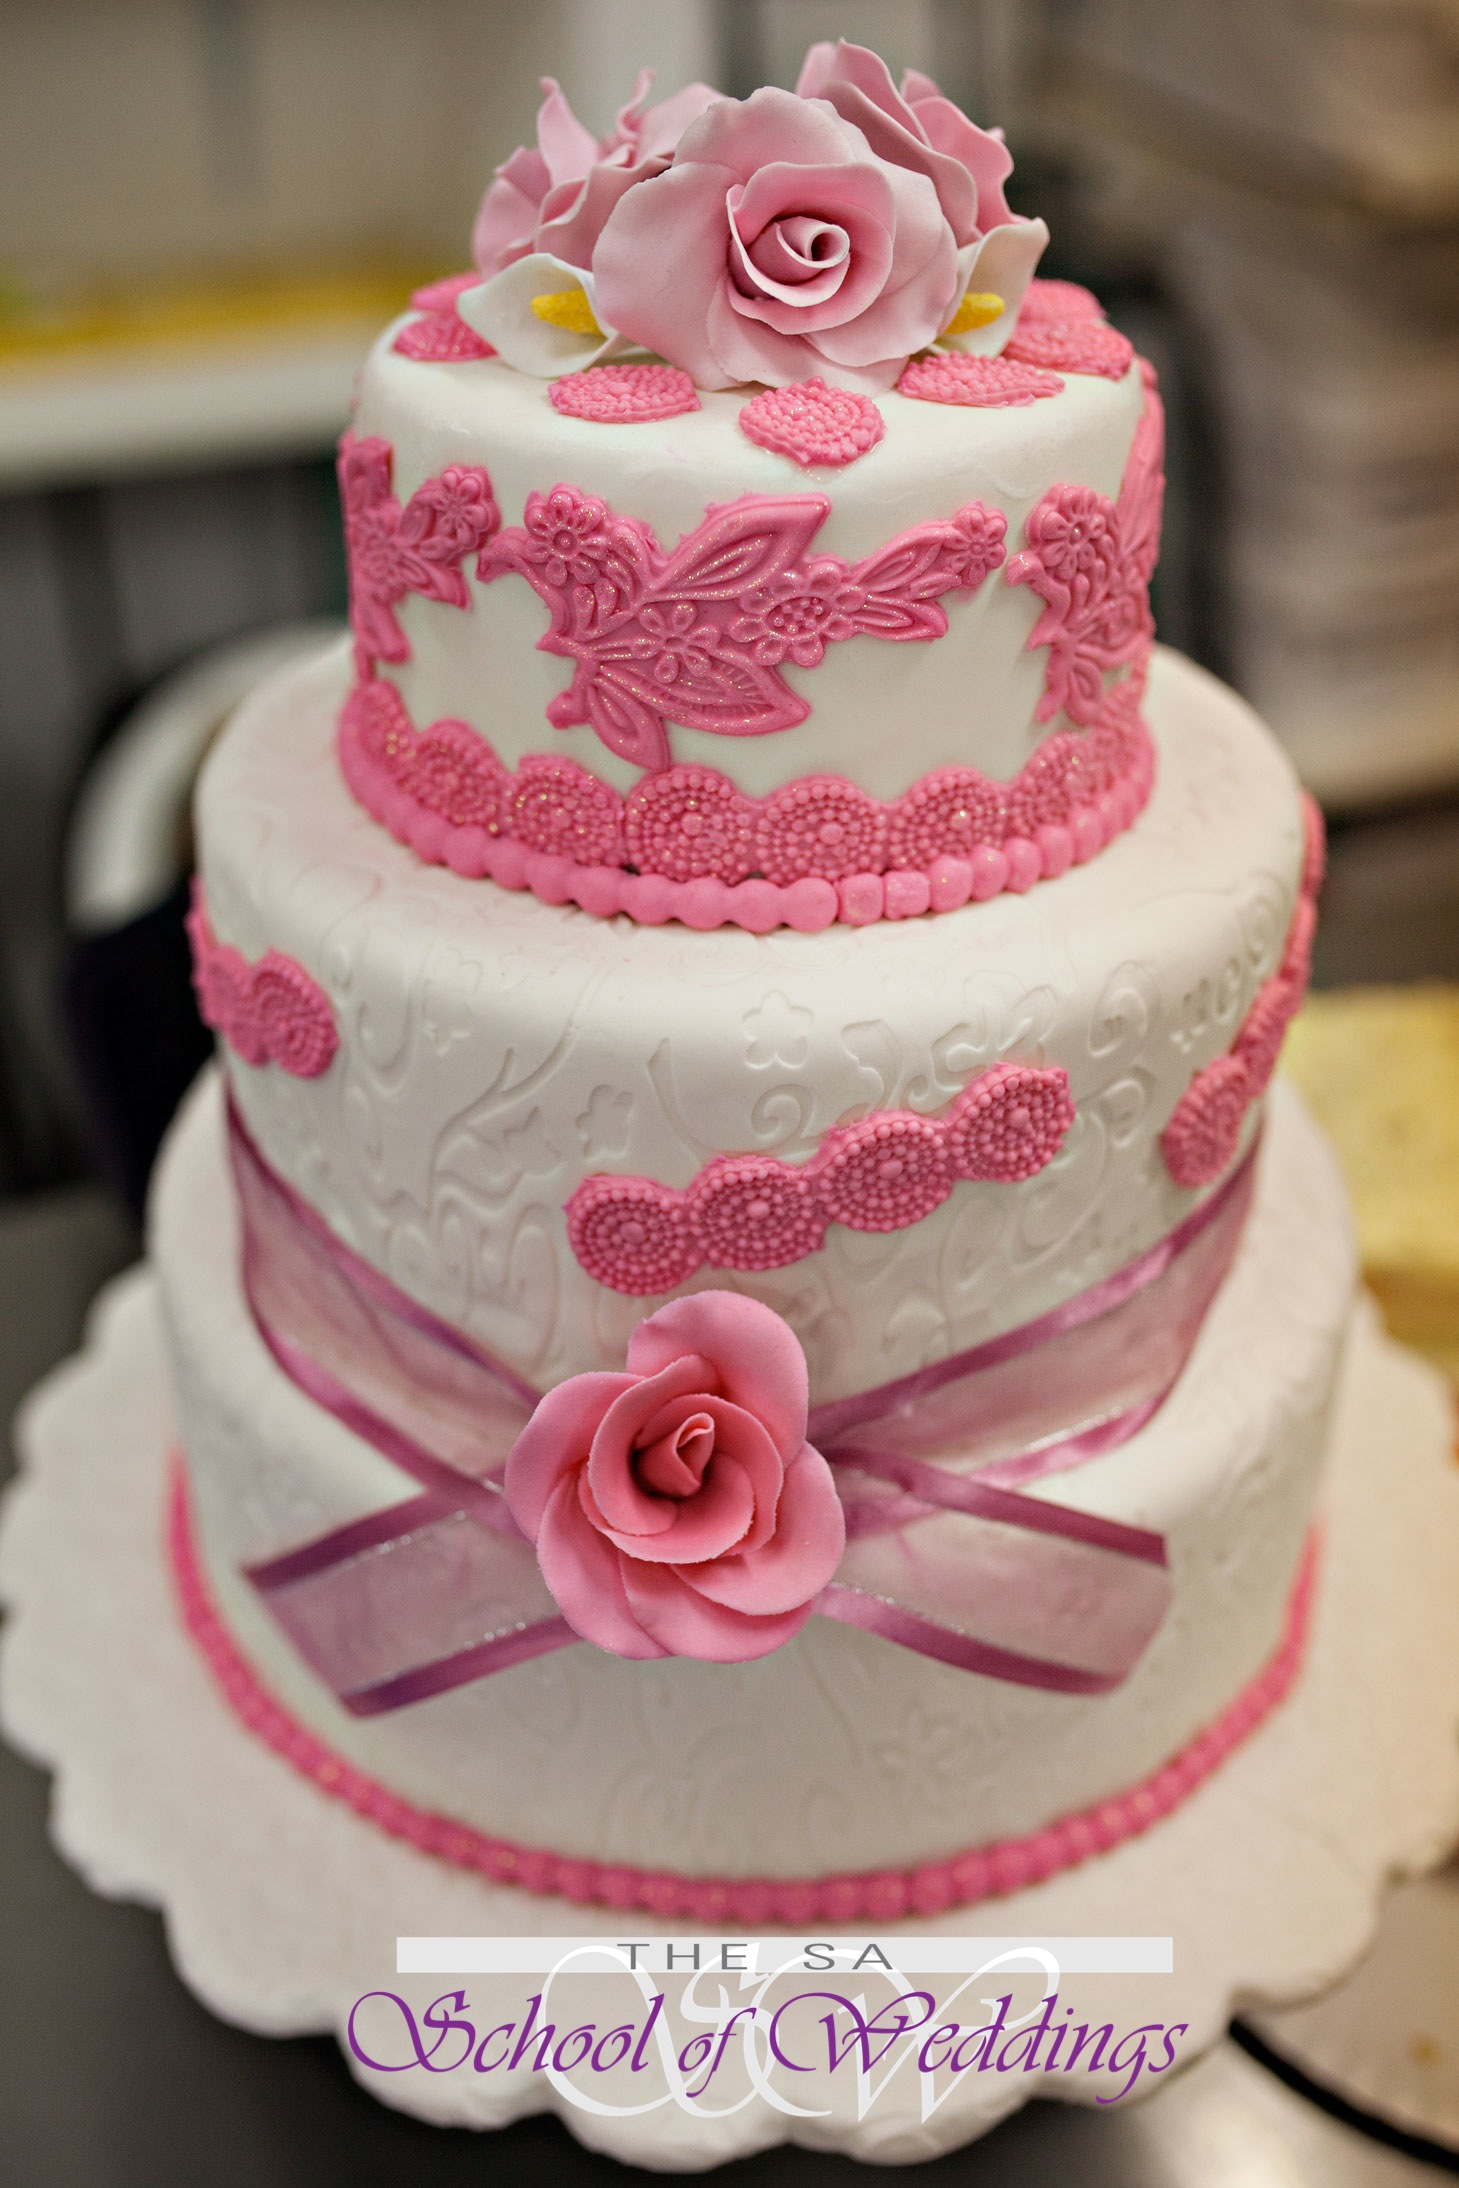 wedding cake courses gallery of wedding cakes wedding cakes courses 8602